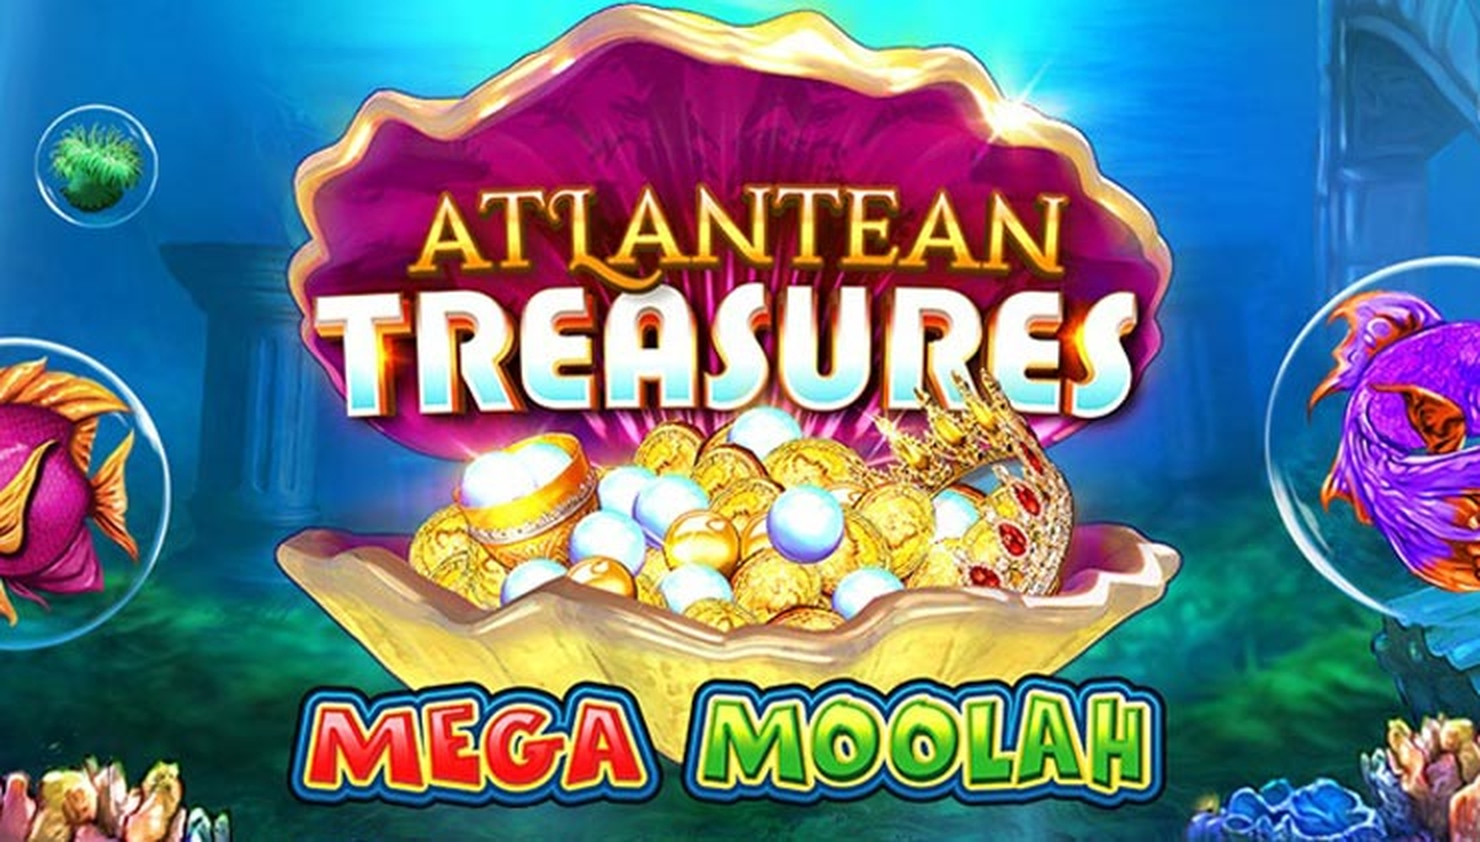 Se Atlantean Treasures Mega Moolah Online Slot Demo Game, Neon Valley Studios